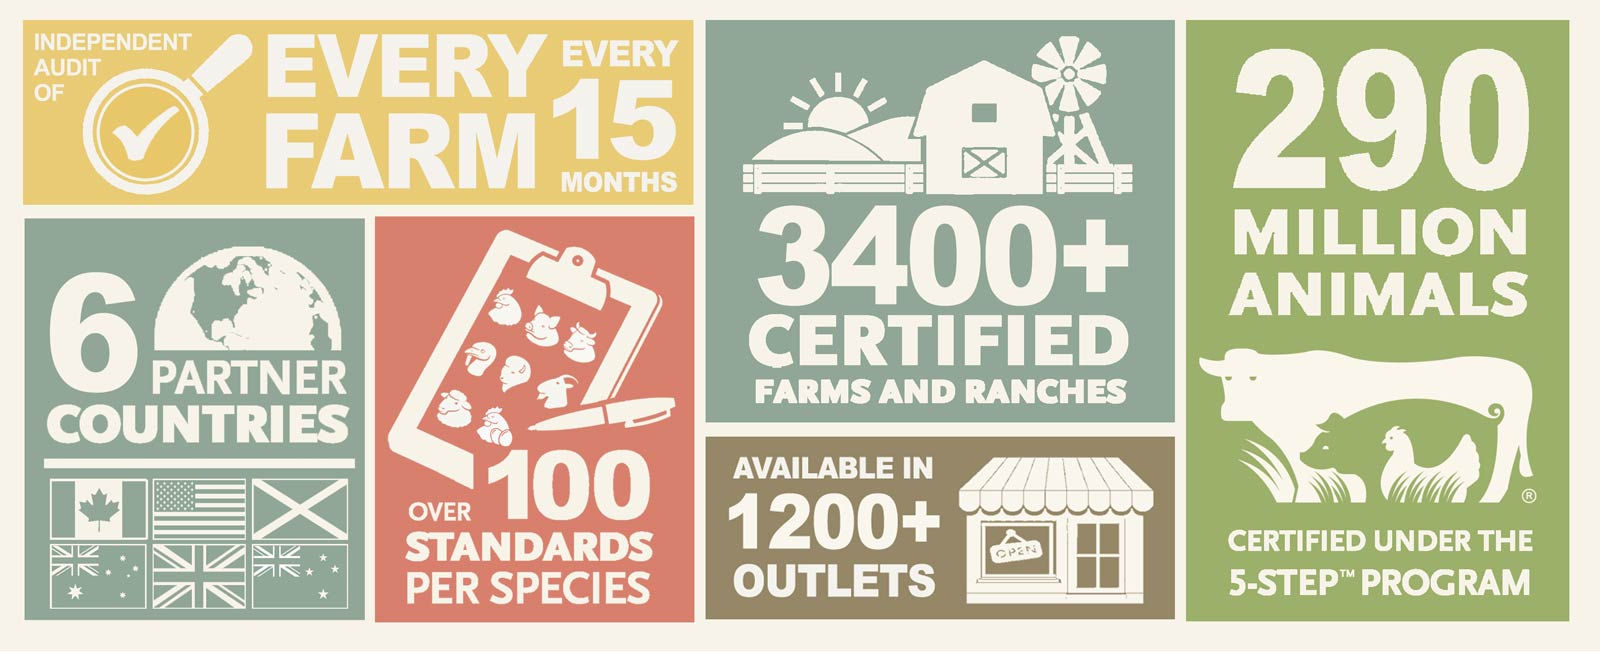 Global Animal Partnership - Important Farm Animal Welfare Standards Statistics